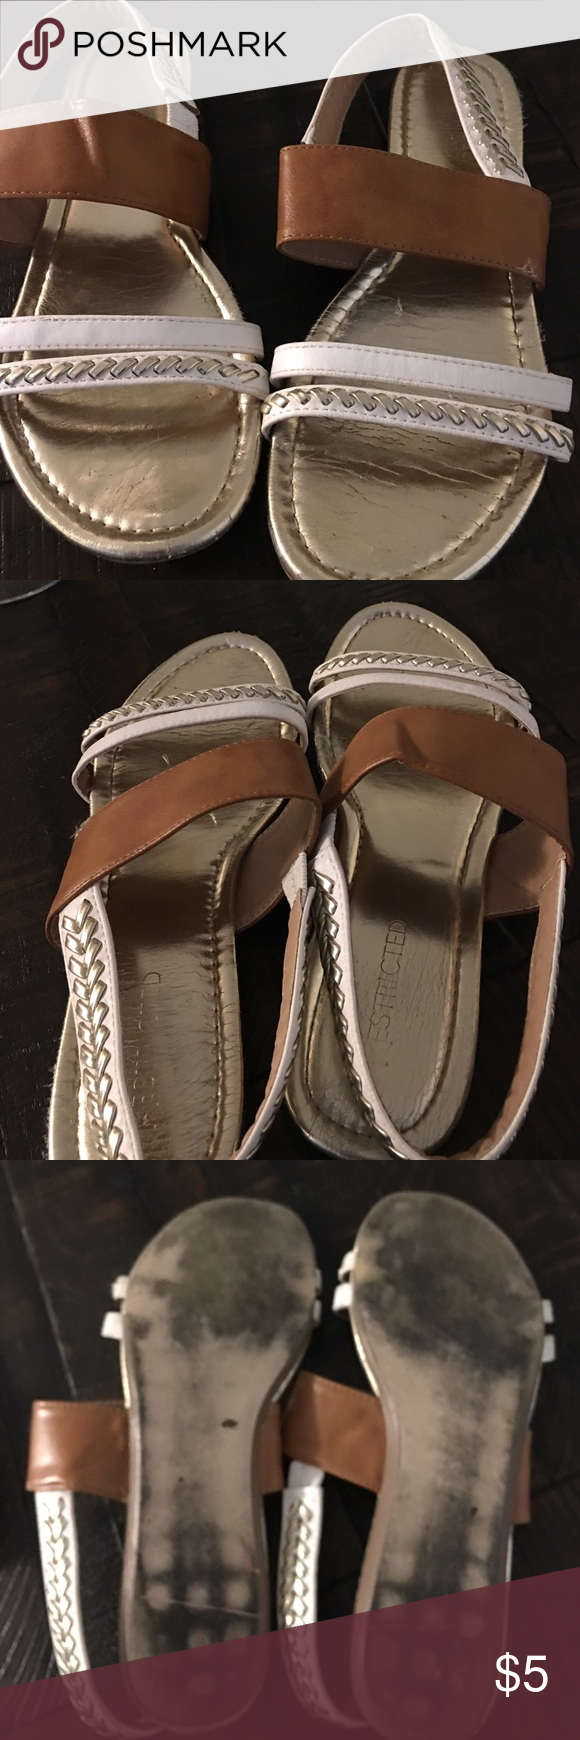 Cute daily sandals. Good condition sandals dress up or down with...🌈💞 Restricted Shoes Sandals